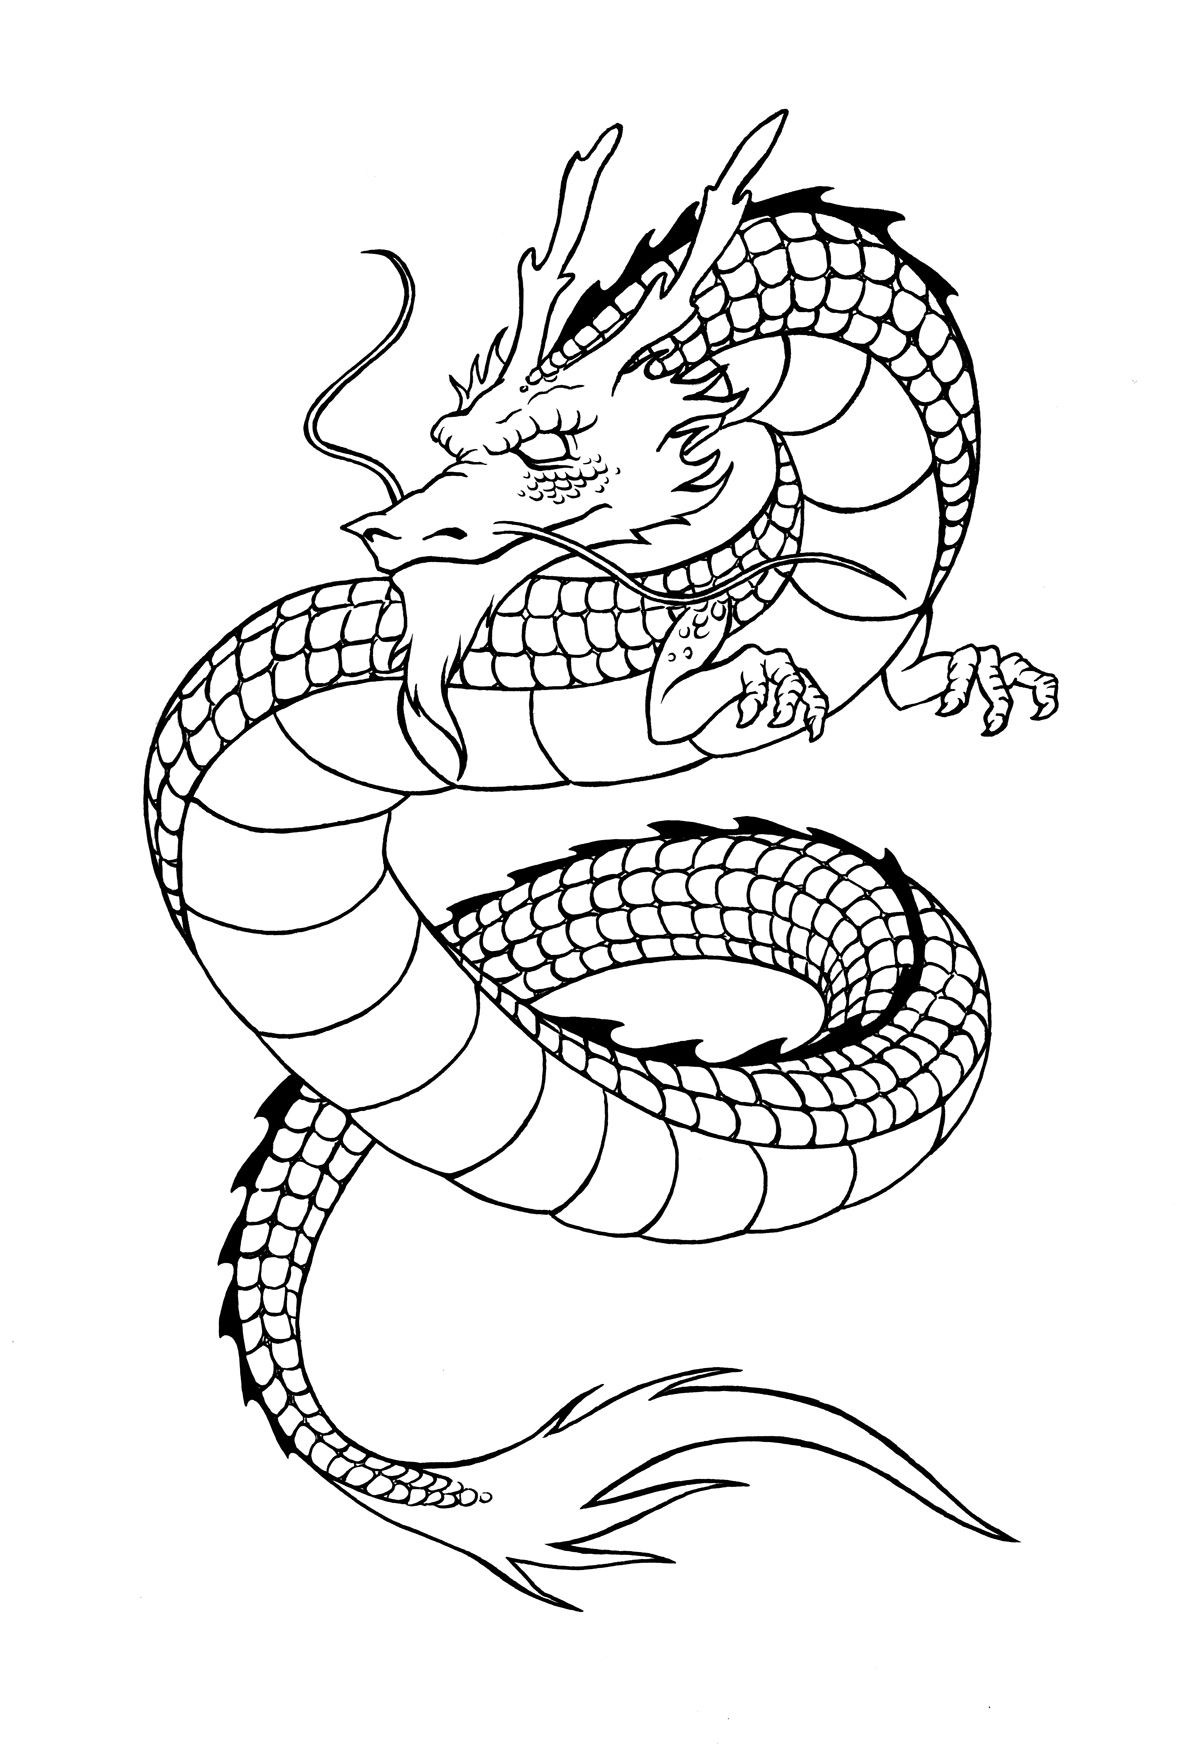 Chinese Dragon Coloring Pages  Download 5b - Save it to your computer